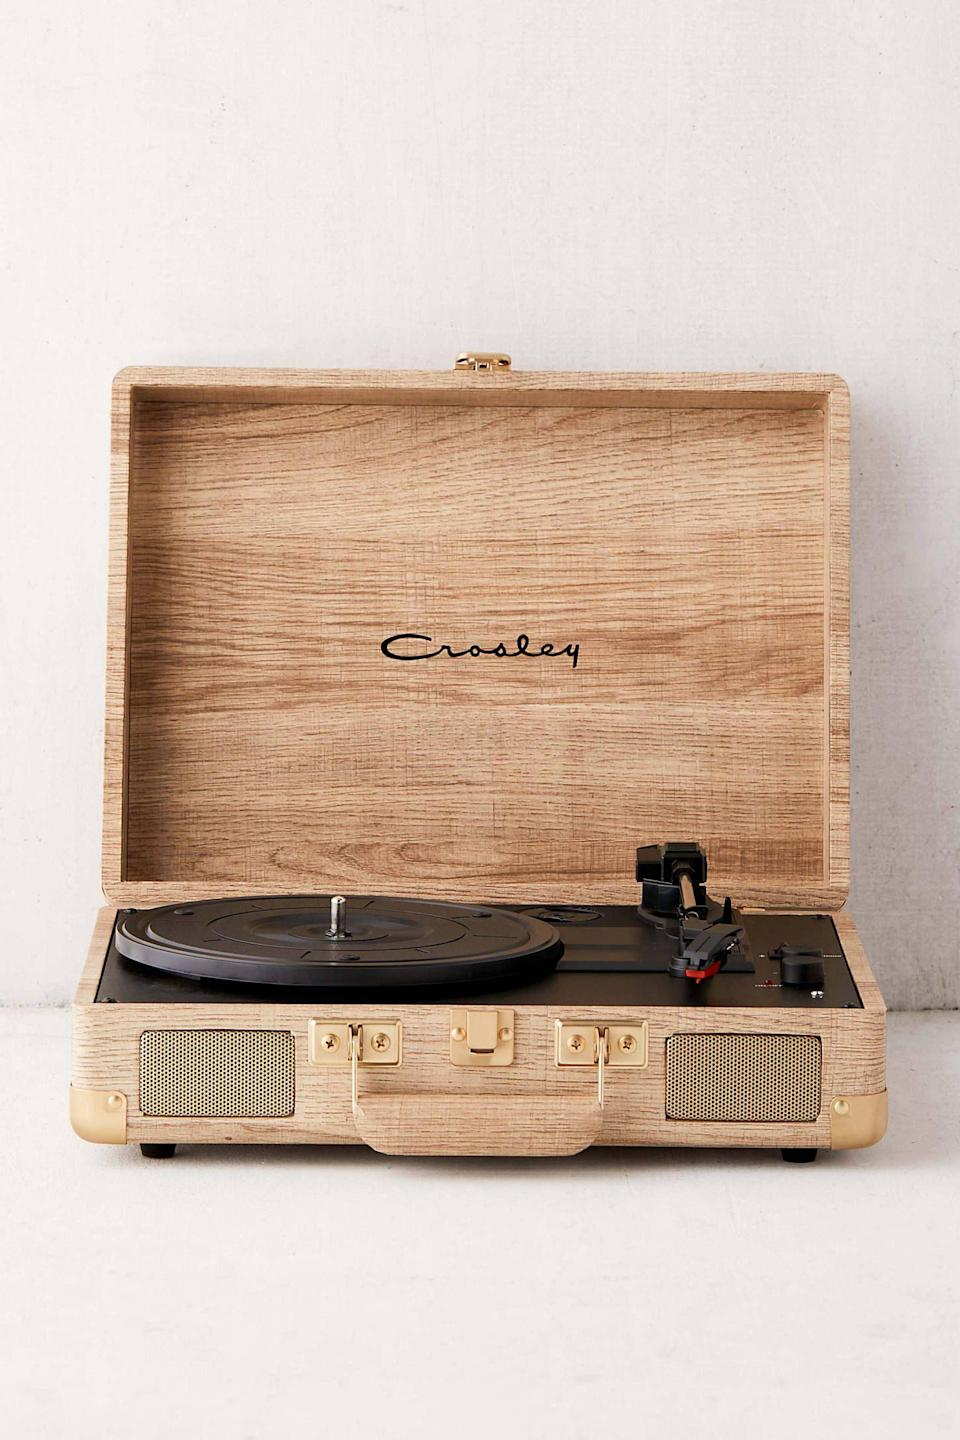 """<p><strong>Crosley</strong></p><p>urbanoutfitters.com</p><p><strong>$99.00</strong></p><p><a href=""""https://go.redirectingat.com?id=74968X1596630&url=https%3A%2F%2Fwww.urbanoutfitters.com%2Fshop%2Fcrosley-uo-exclusive-wood-cruiser-bluetooth-record-player&sref=https%3A%2F%2Fwww.countryliving.com%2Fshopping%2Fgifts%2Fg24995746%2Fgrandpa-gifts%2F"""" rel=""""nofollow noopener"""" target=""""_blank"""" data-ylk=""""slk:Shop Now"""" class=""""link rapid-noclick-resp"""">Shop Now</a></p><p>Nestled in a handsome briefcase, this Bluetooth-enabled vintage-inspired turntable will also play his favorite vinyl LPs.</p>"""